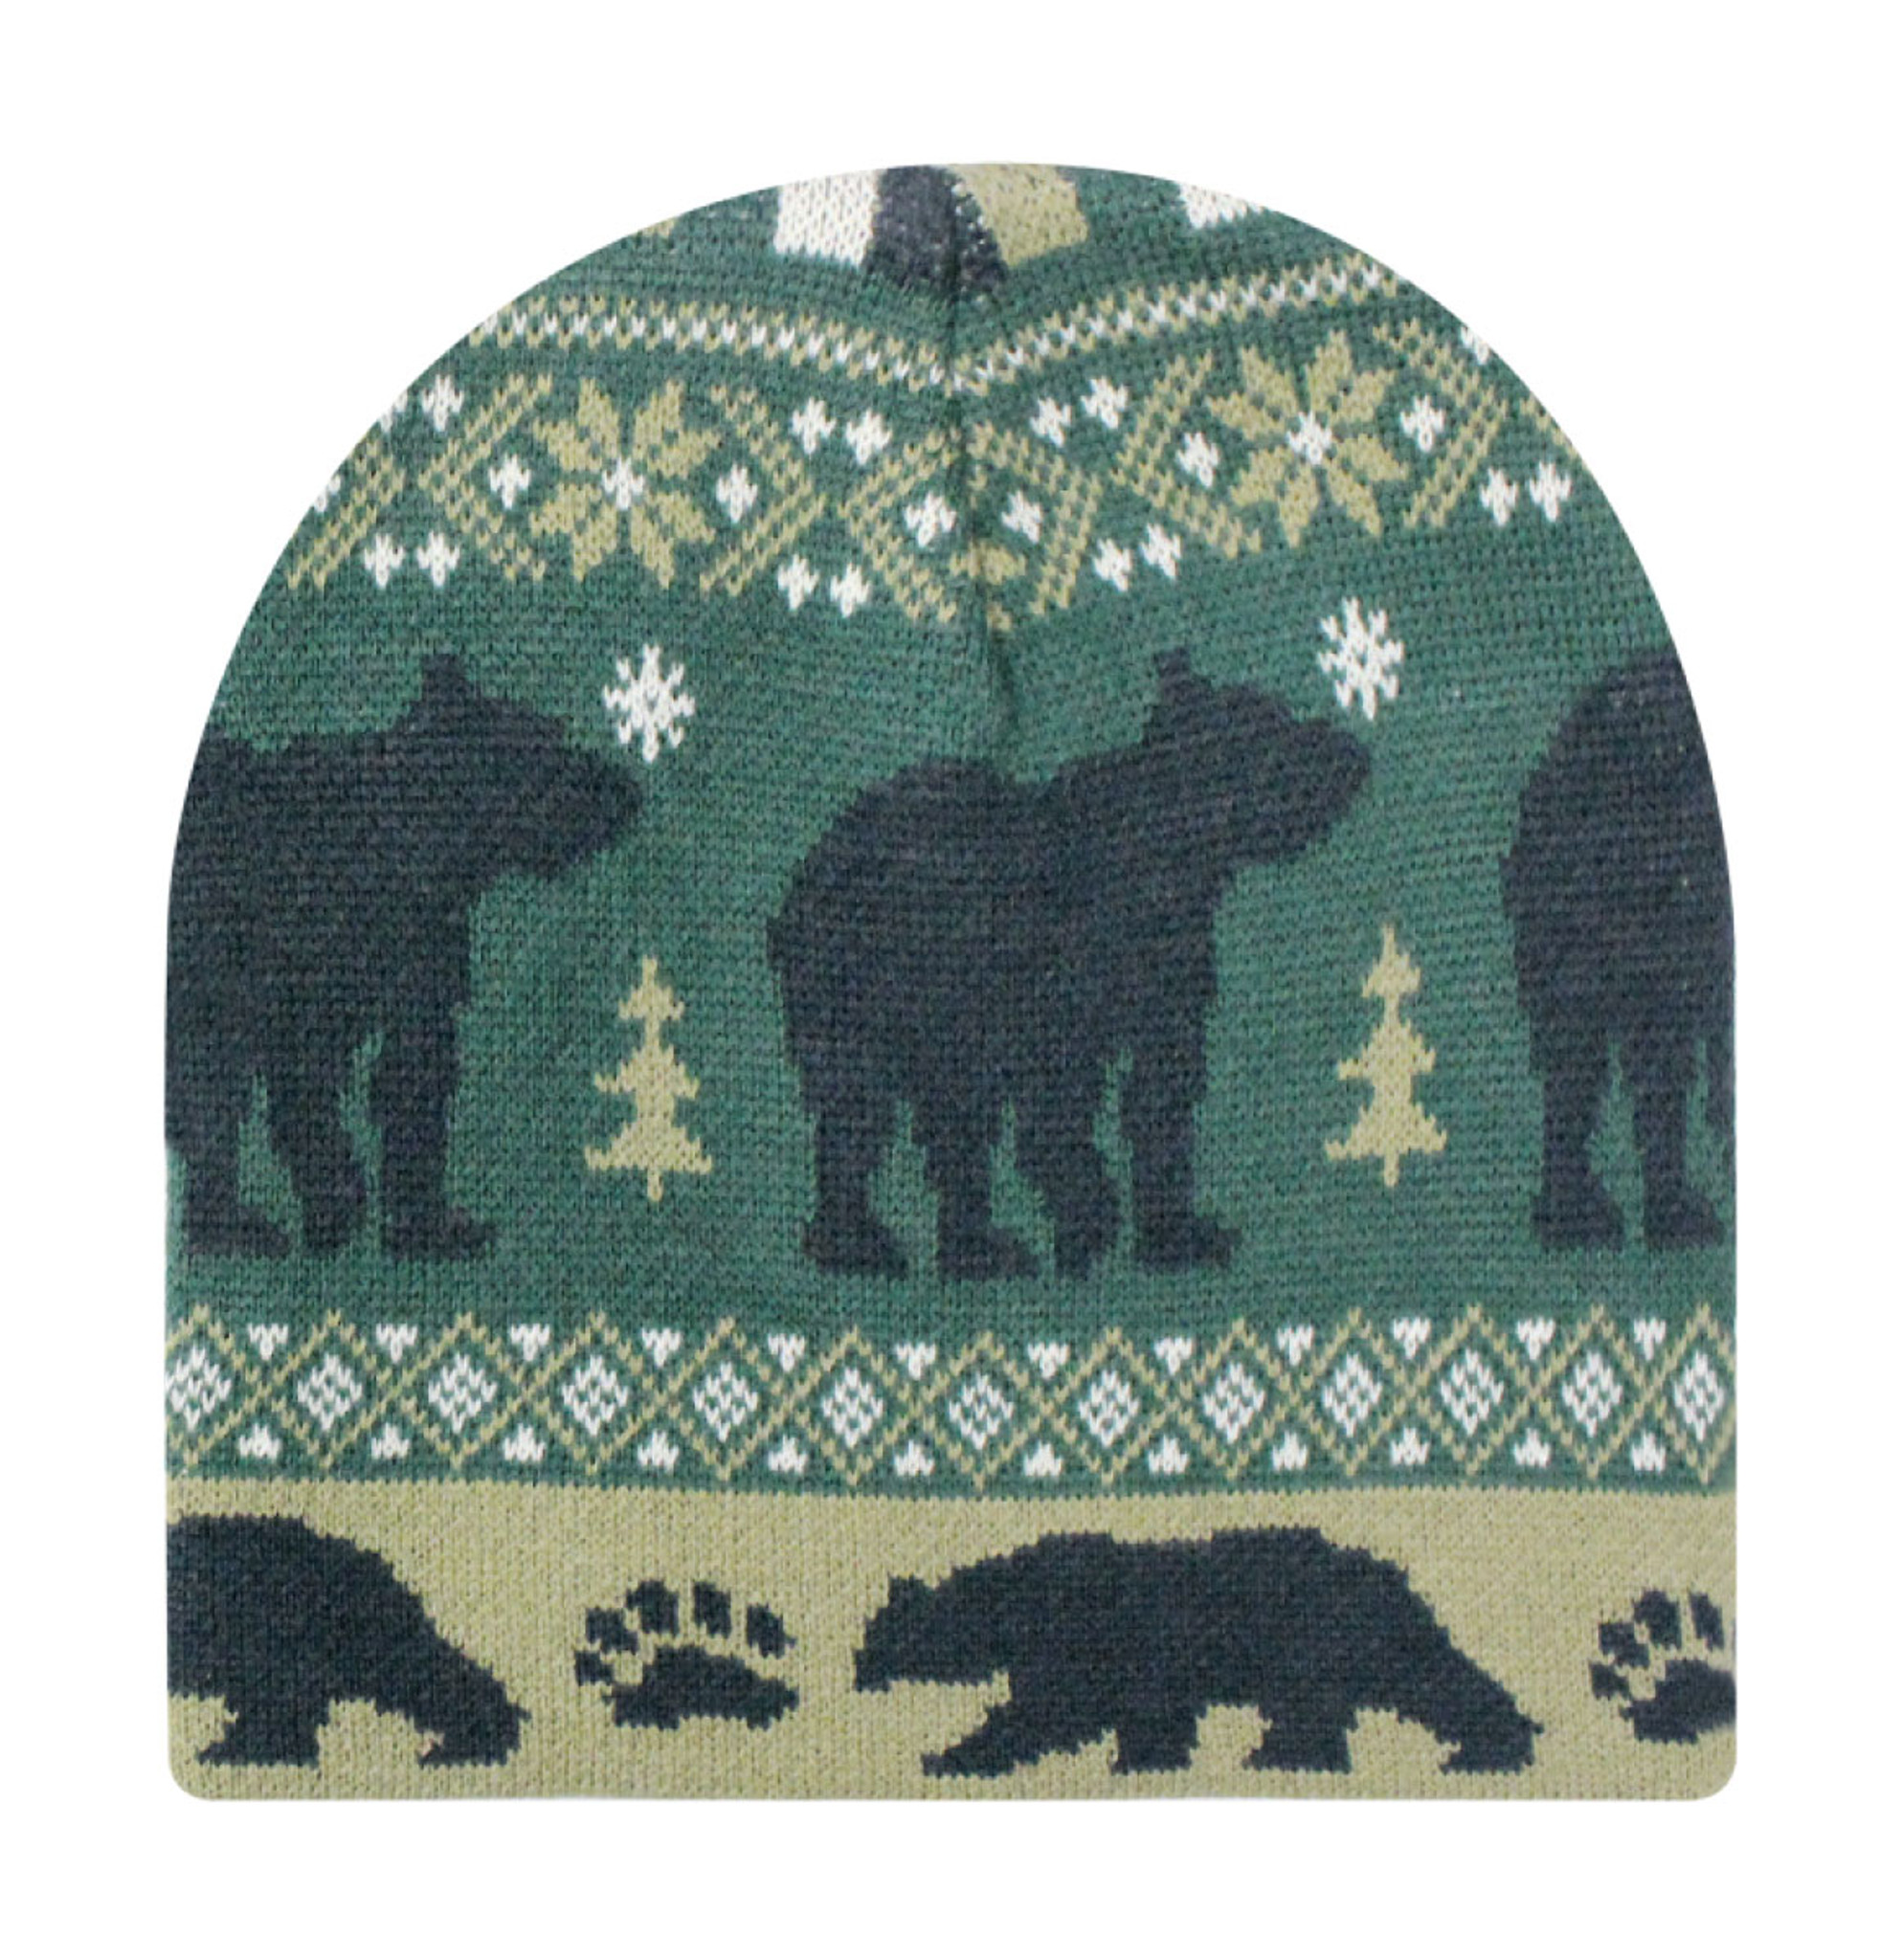 dafcfd22546 Animal Knit Beanie - Bear - I Hate Hats